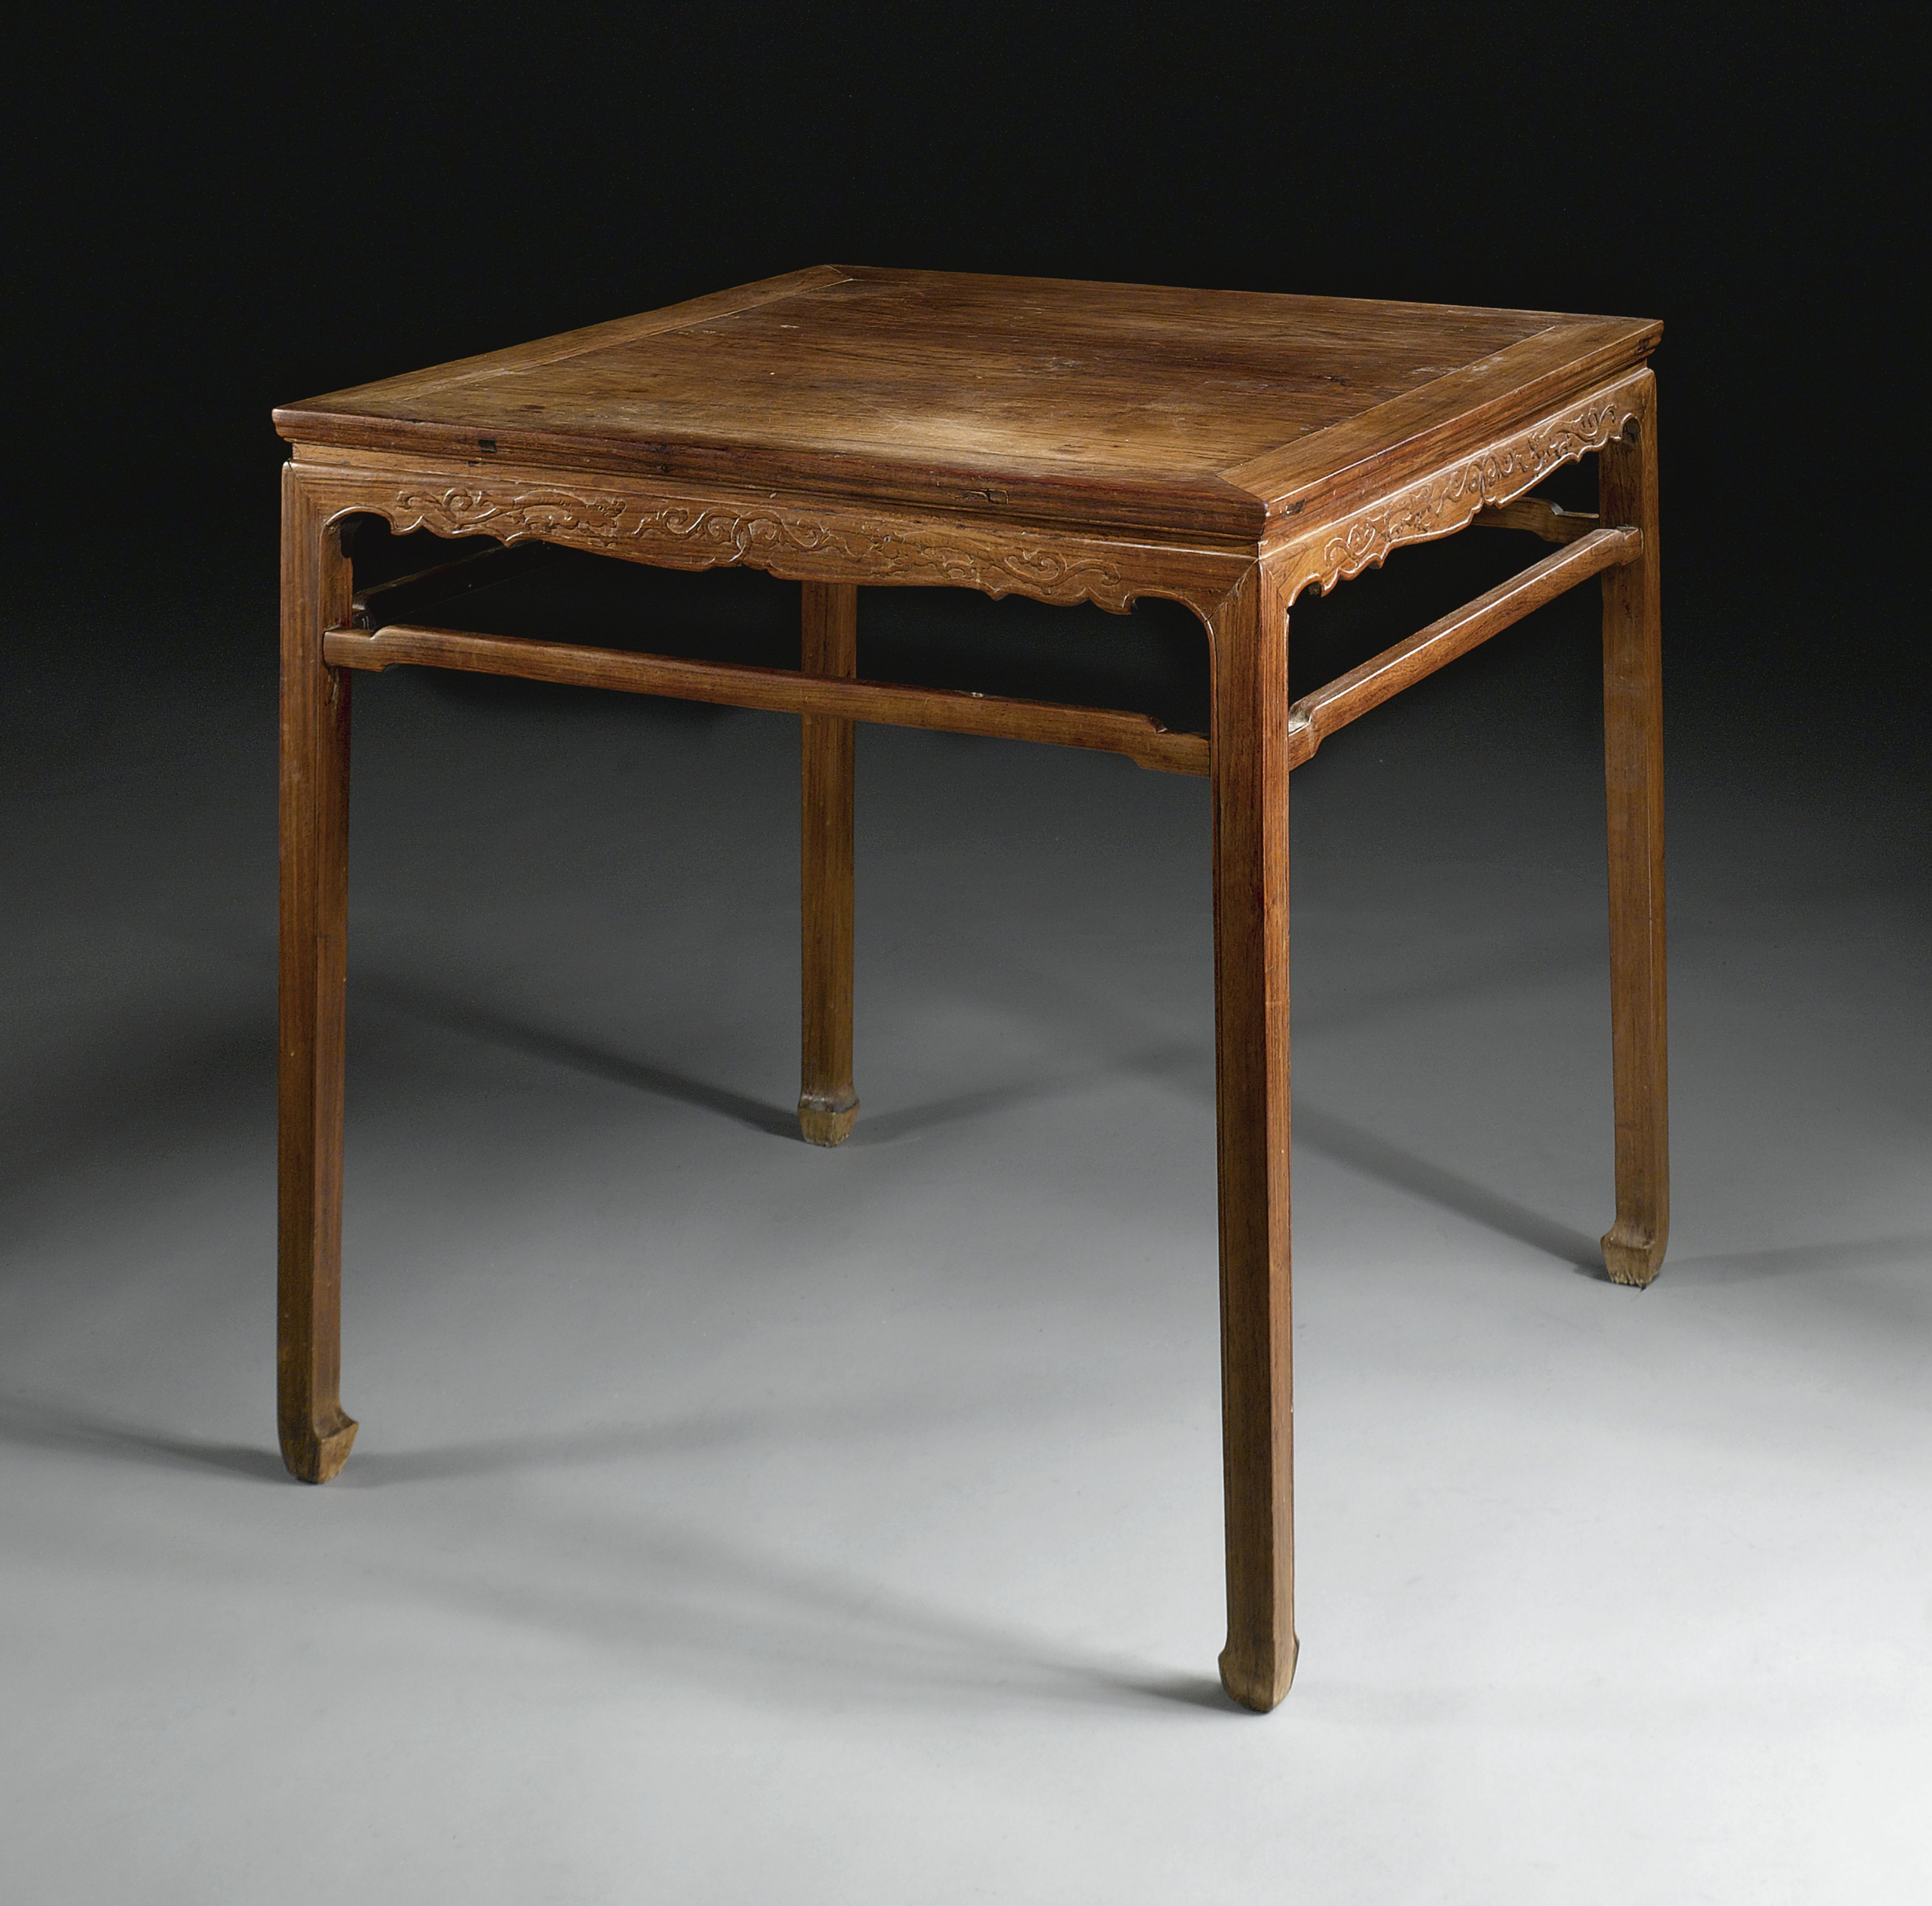 Furniture In China: A HUANGHUALI SQUARE TABLE (FANGZHUO) LATE MING / EARLY